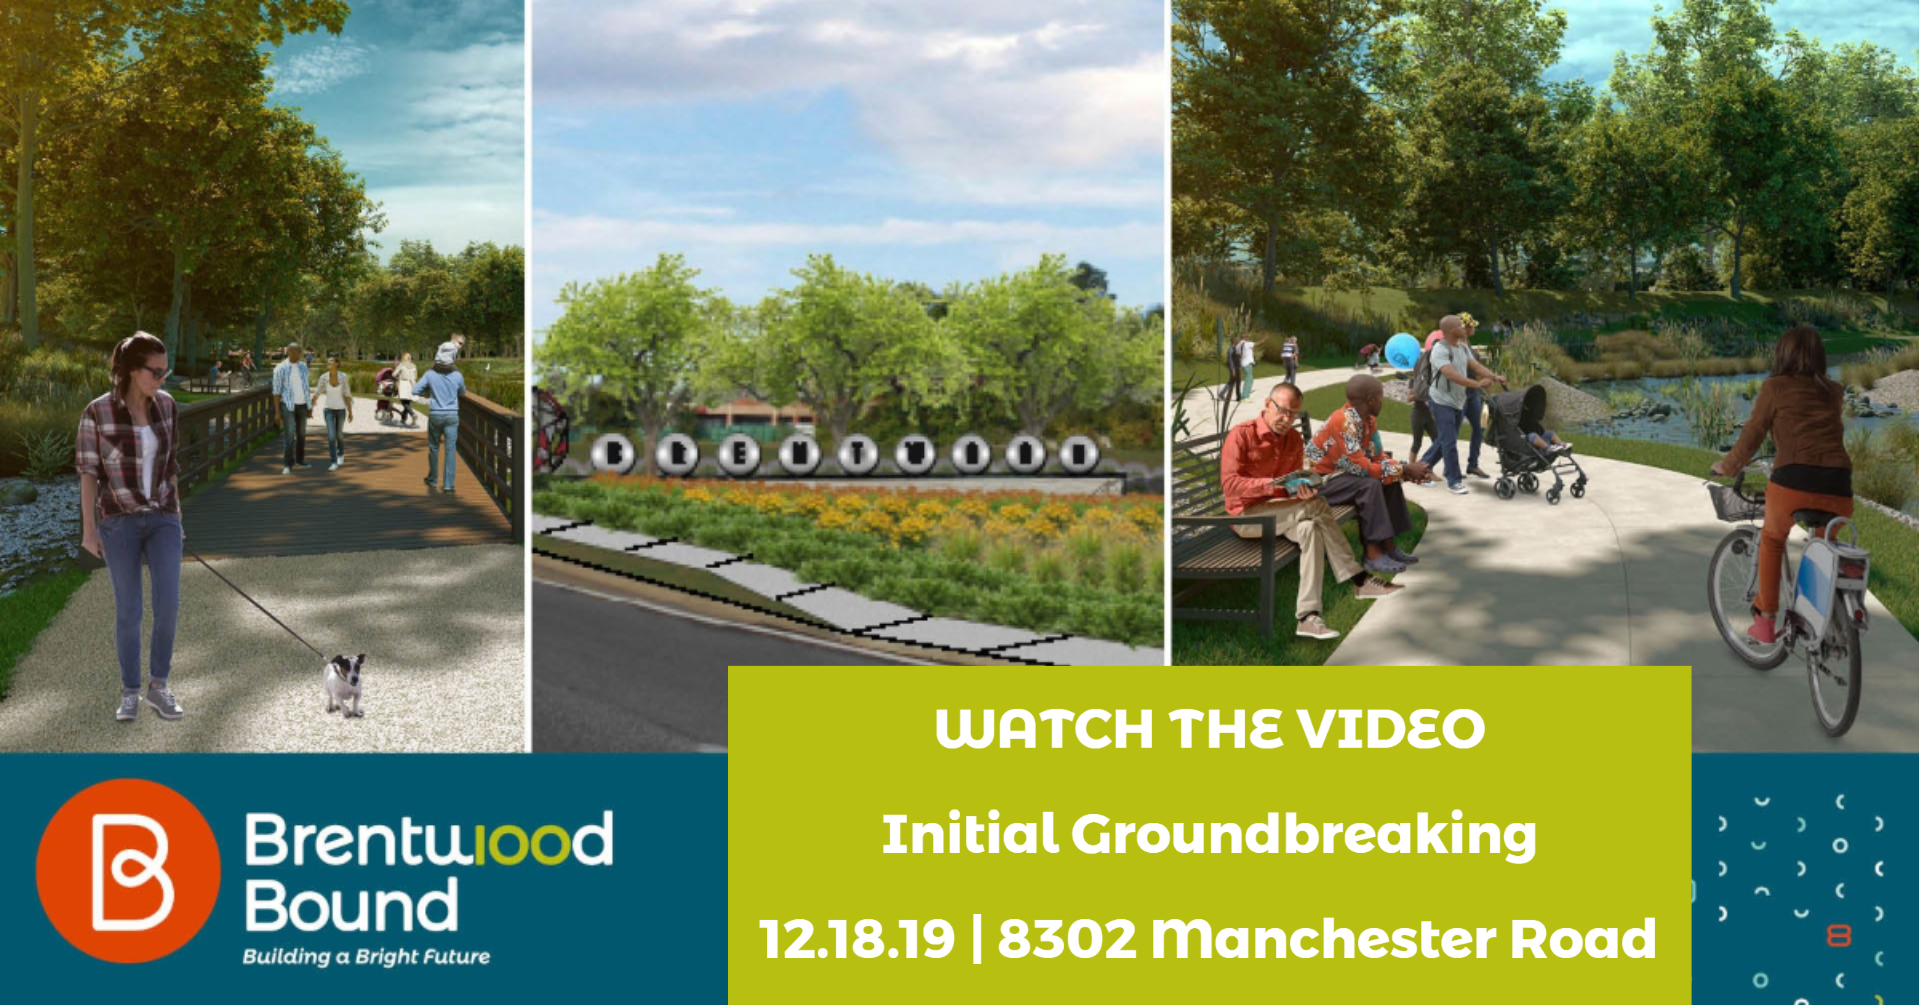 Brentwood Bound Groundbreaking 12.18.19 Video